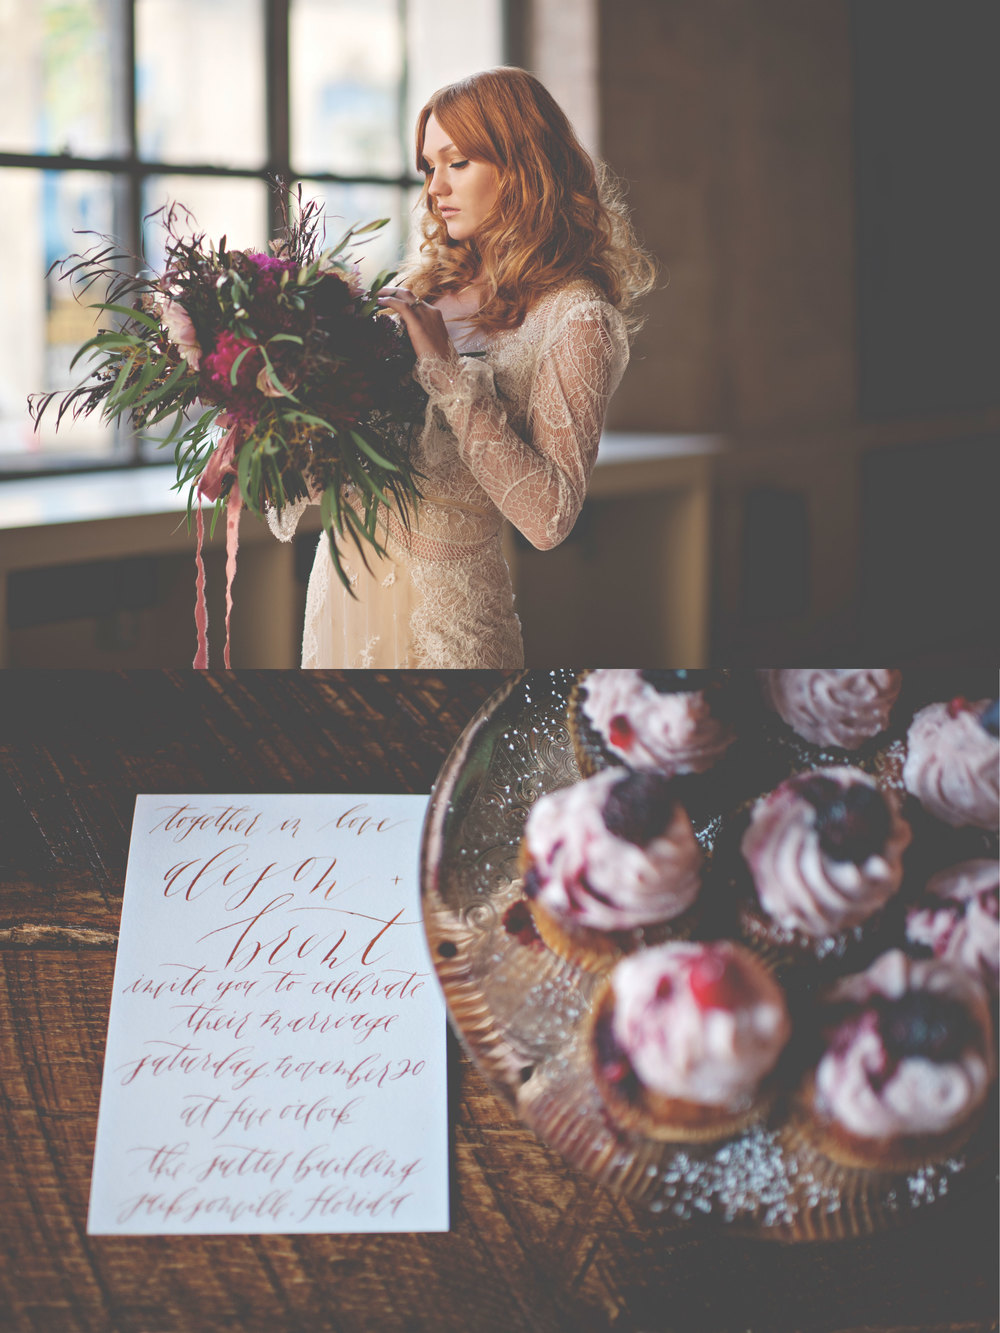 graceline illustration + calligraphy | christina block photography | dress: inbal dror | hair + makeup: modern classic beauty florals: ruby reds floral | cakes: sweet n flour